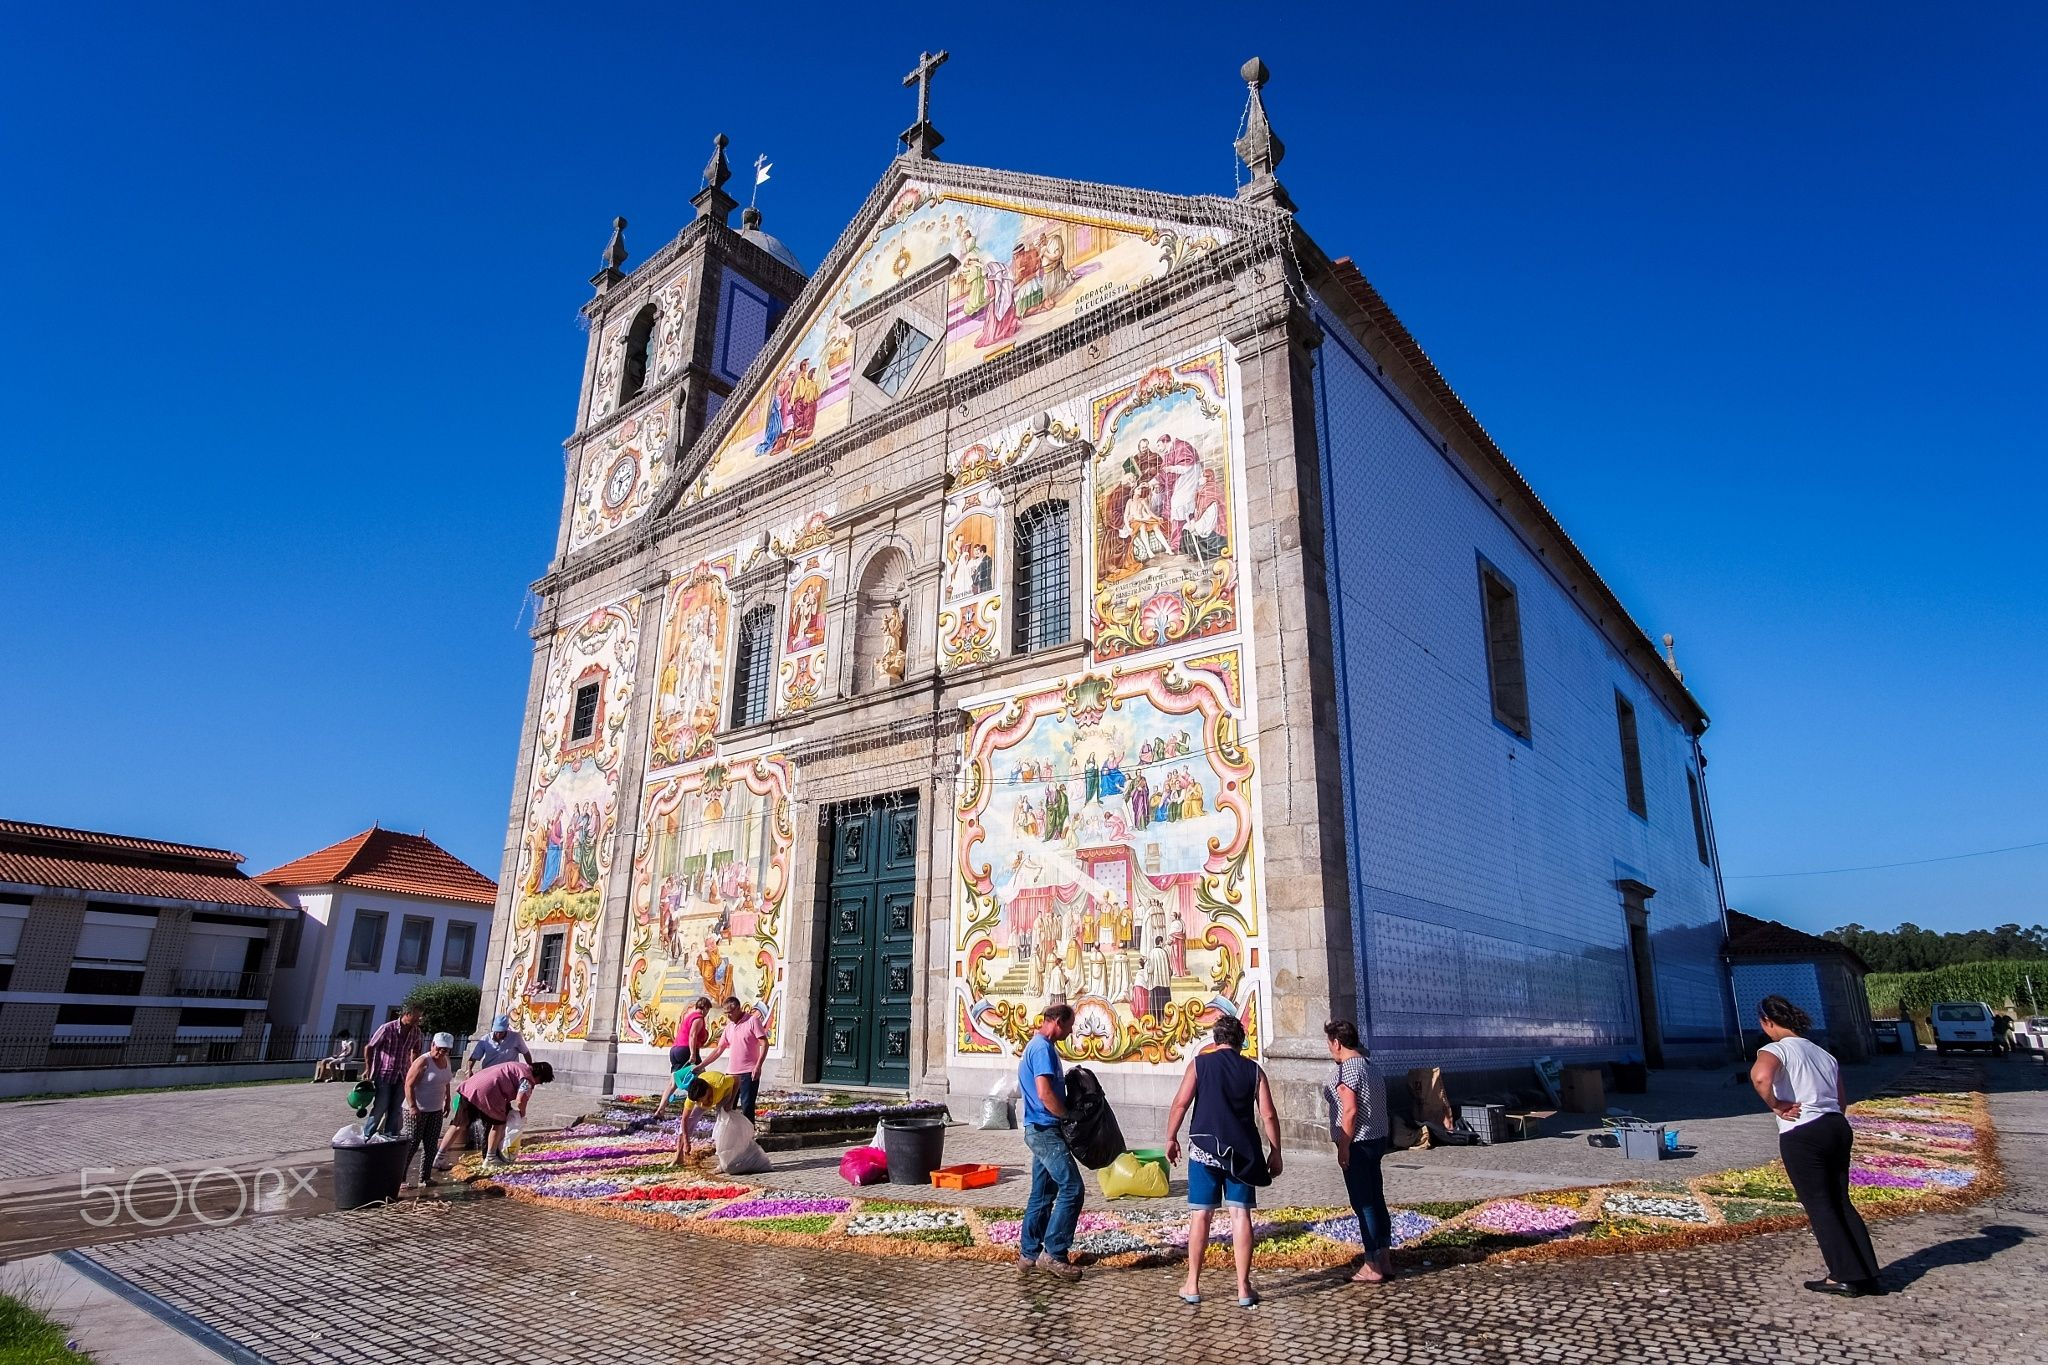 Jubilation - Locals prepare the decoration of the Válega church, to celebrate the jubilation on the priest.  This church is a masterpiece of the azulejo (painted, glazed tile) art and one of the most beautiful in Portugal. Sure worth a visit, especially at sunset, as the main façade faces west. The interior is also amazing, with an exotic wood ceiling and wonderful tiles covering the walls.  Válega is located near the town of Ovar and easy enough to reach from Porto.